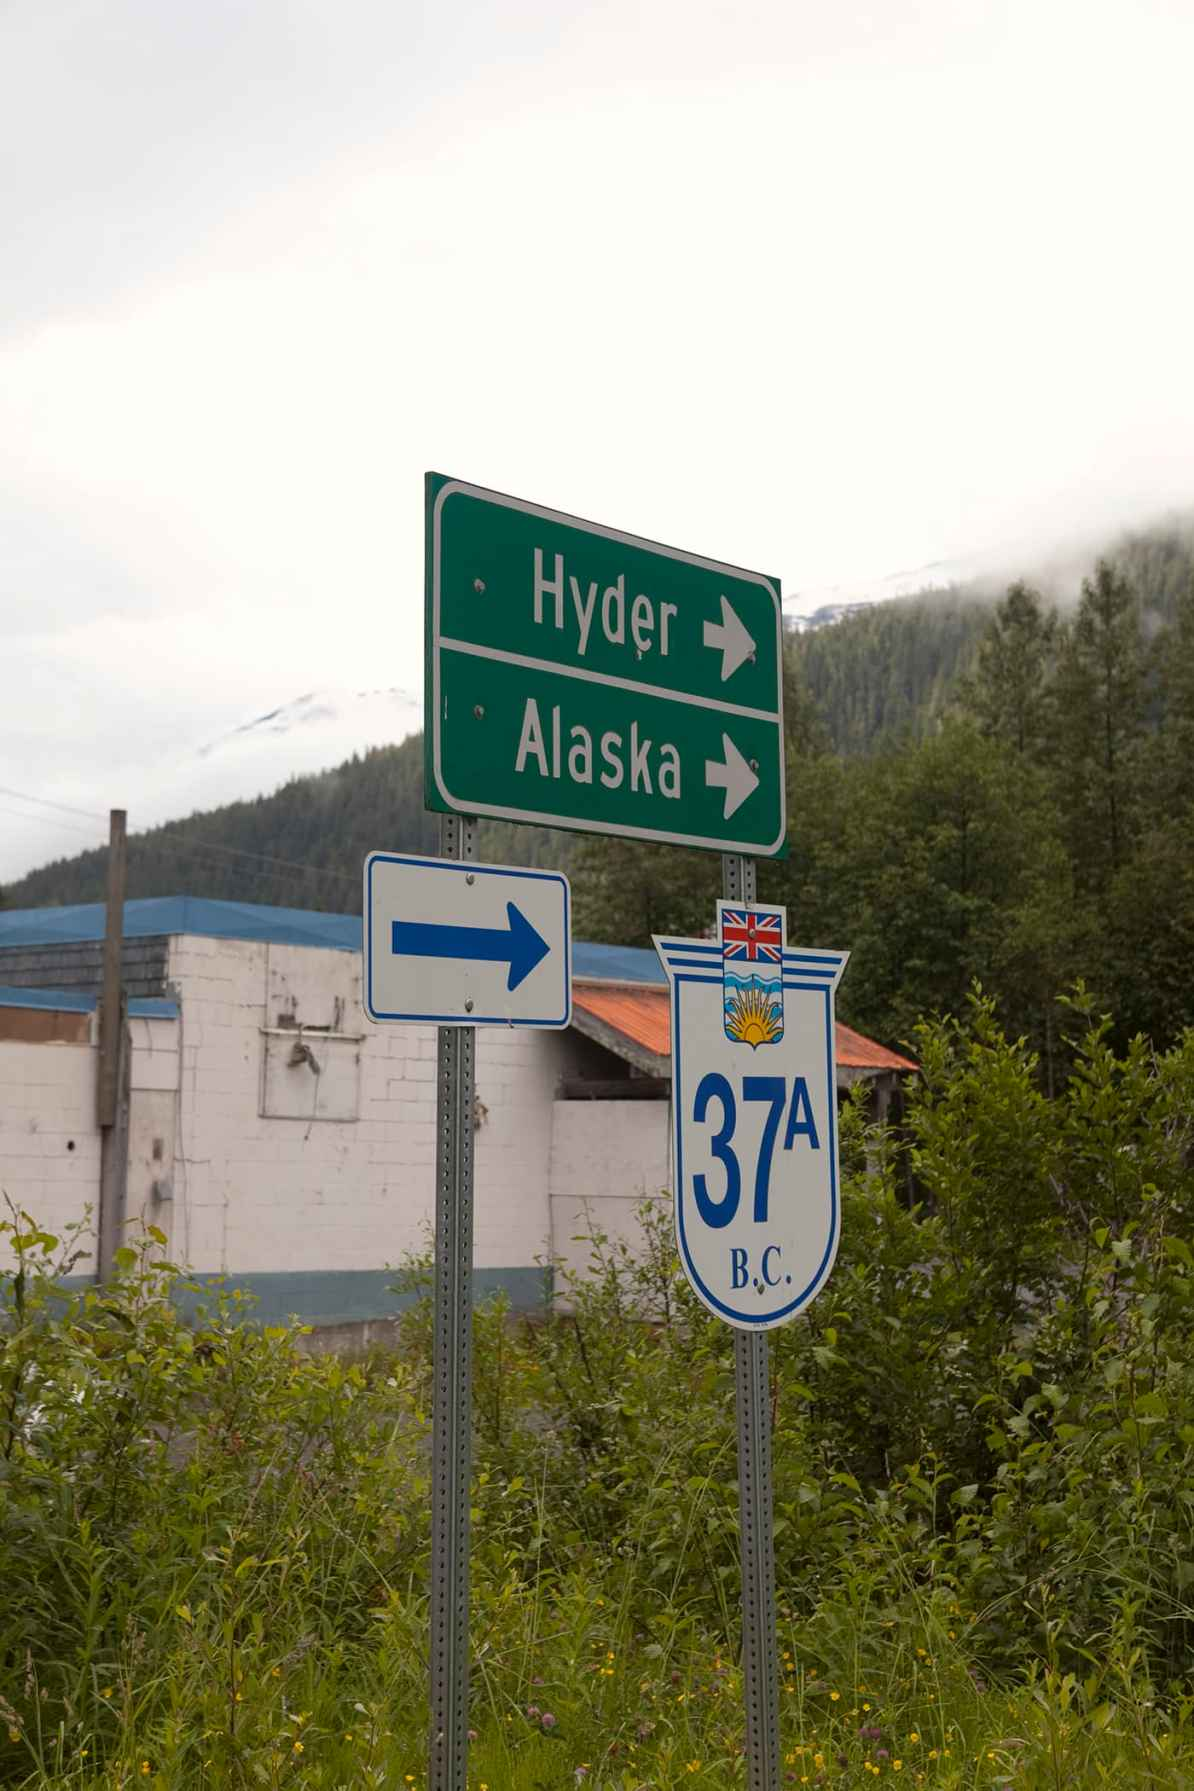 Hyder, Alaska, road sign.